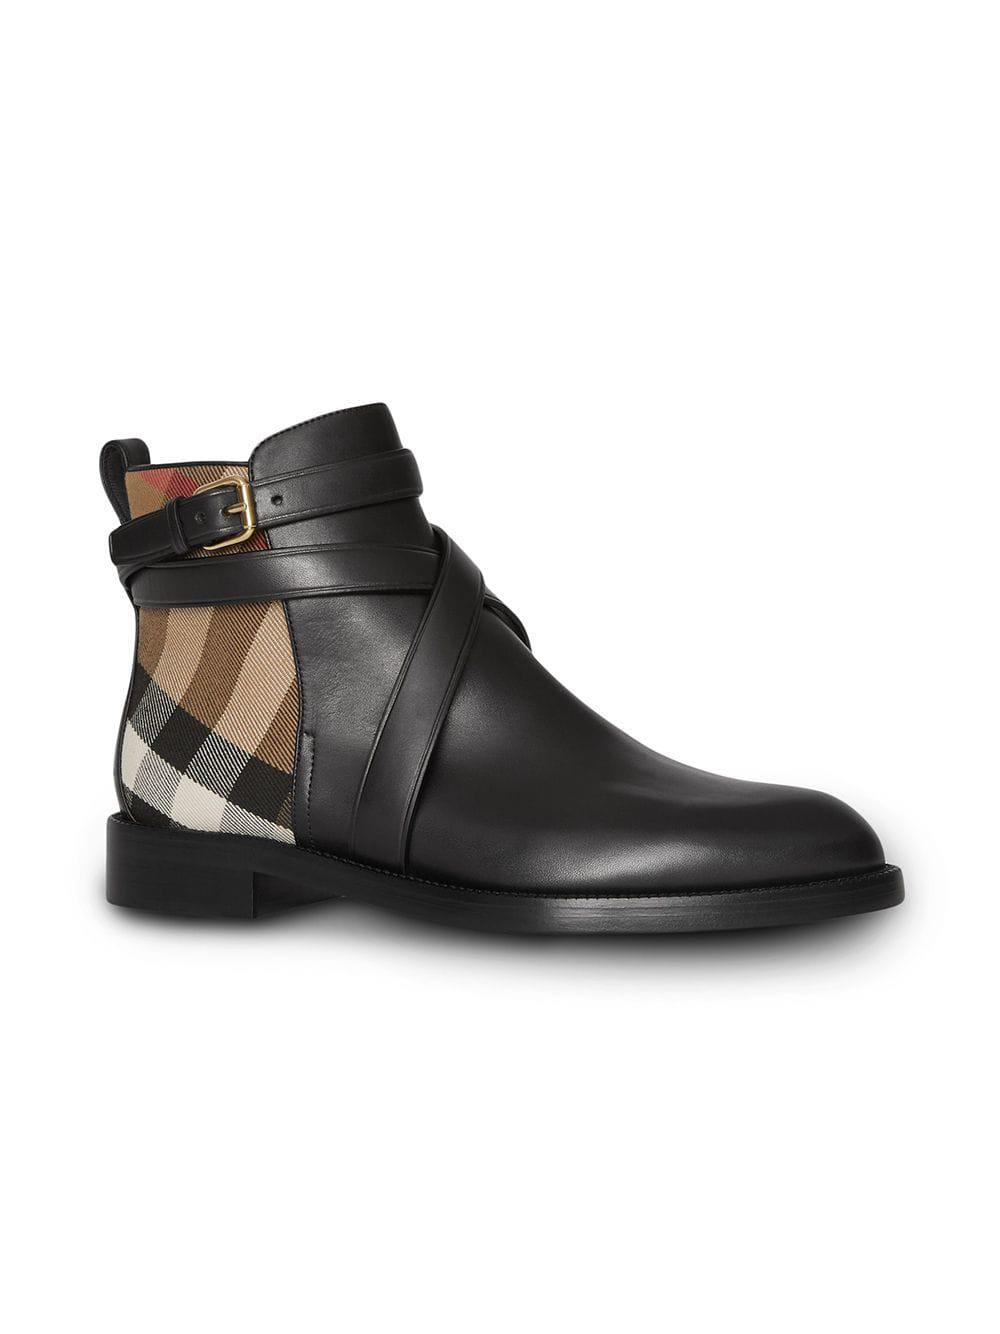 0bb7d5bc5a99 Lyst - Burberry House Check And Leather Ankle Boots in Black - Save 24%